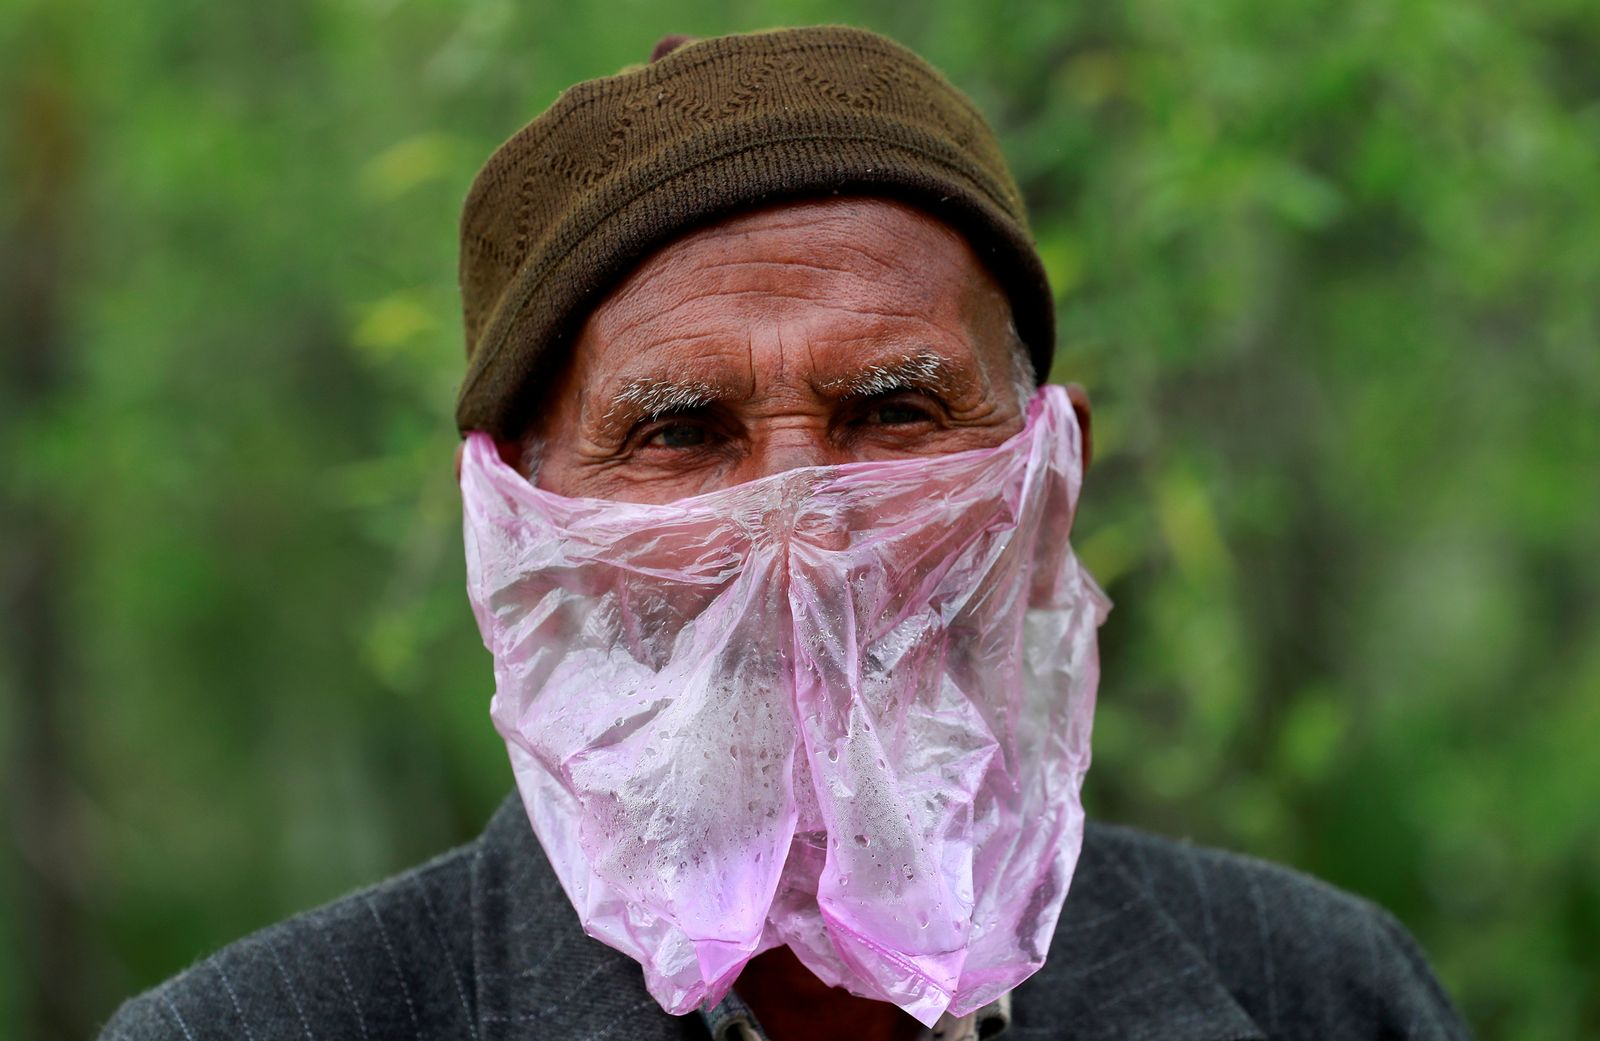 A man uses a plastic bag as a mask amid concerns about the spread of coronavirus disease (COVID-19), in Srinagar April 7, 2020. REUTERS/Danish Ismail     TPX IMAGES OF THE DAY